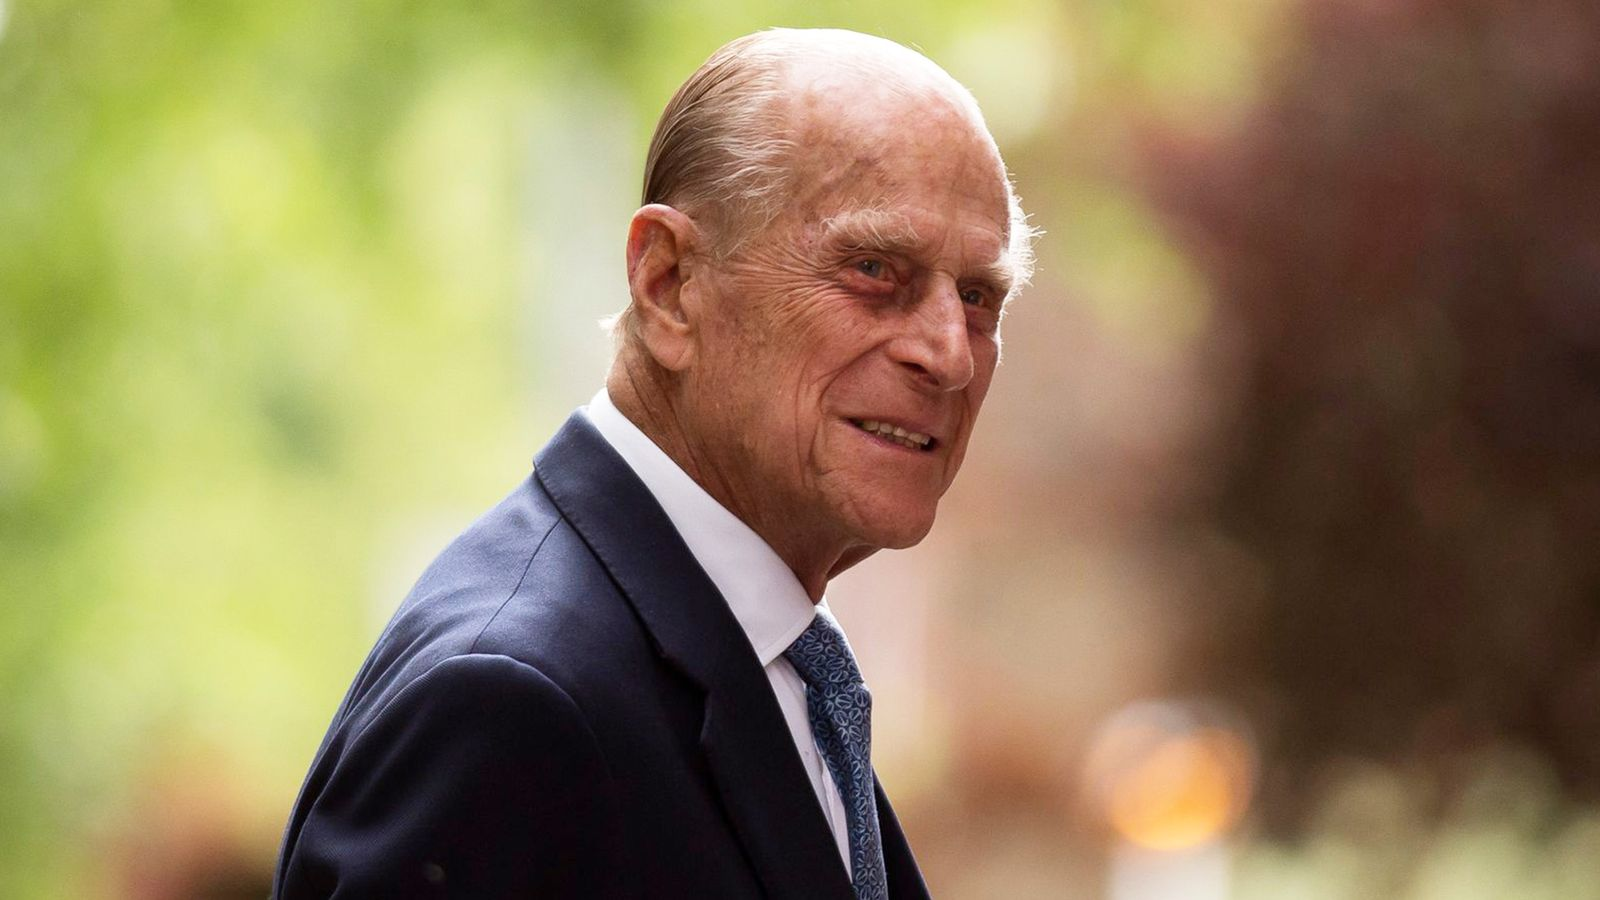 prince philip funeral - photo #3